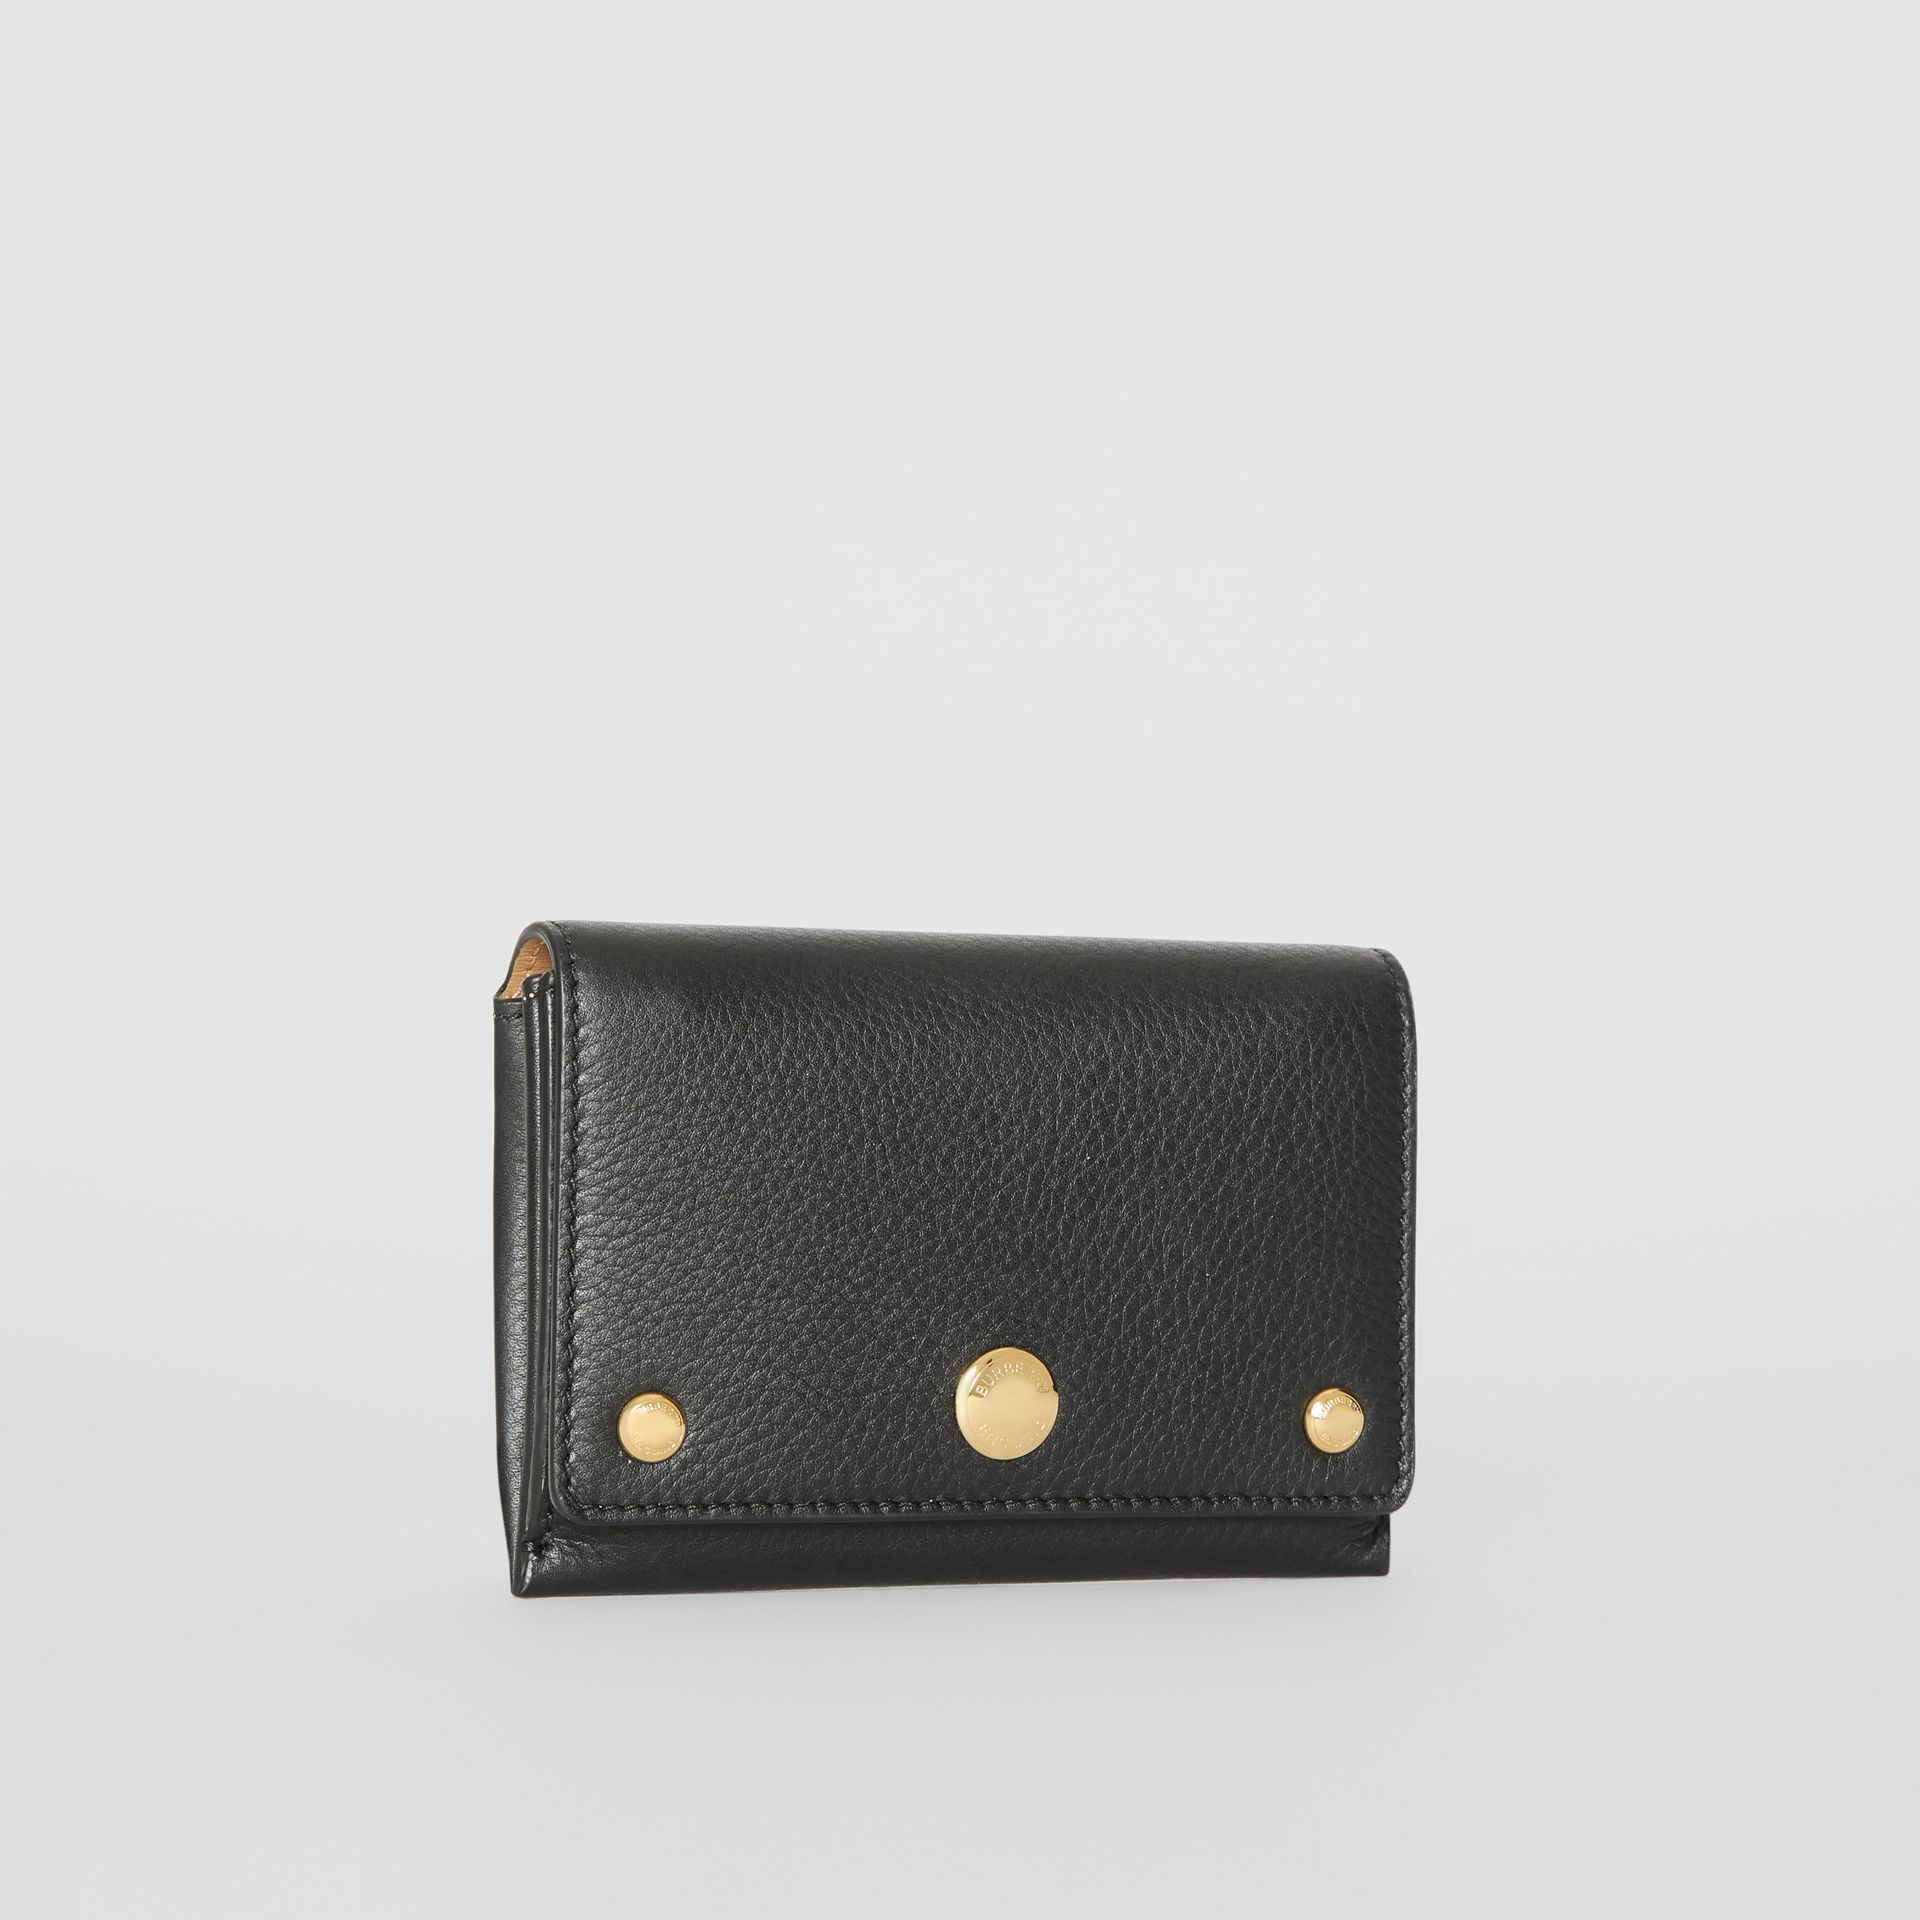 Triple Stud Leather Folding Wallet in Black - Women | Burberry Hong Kong S.A.R - gallery image 4